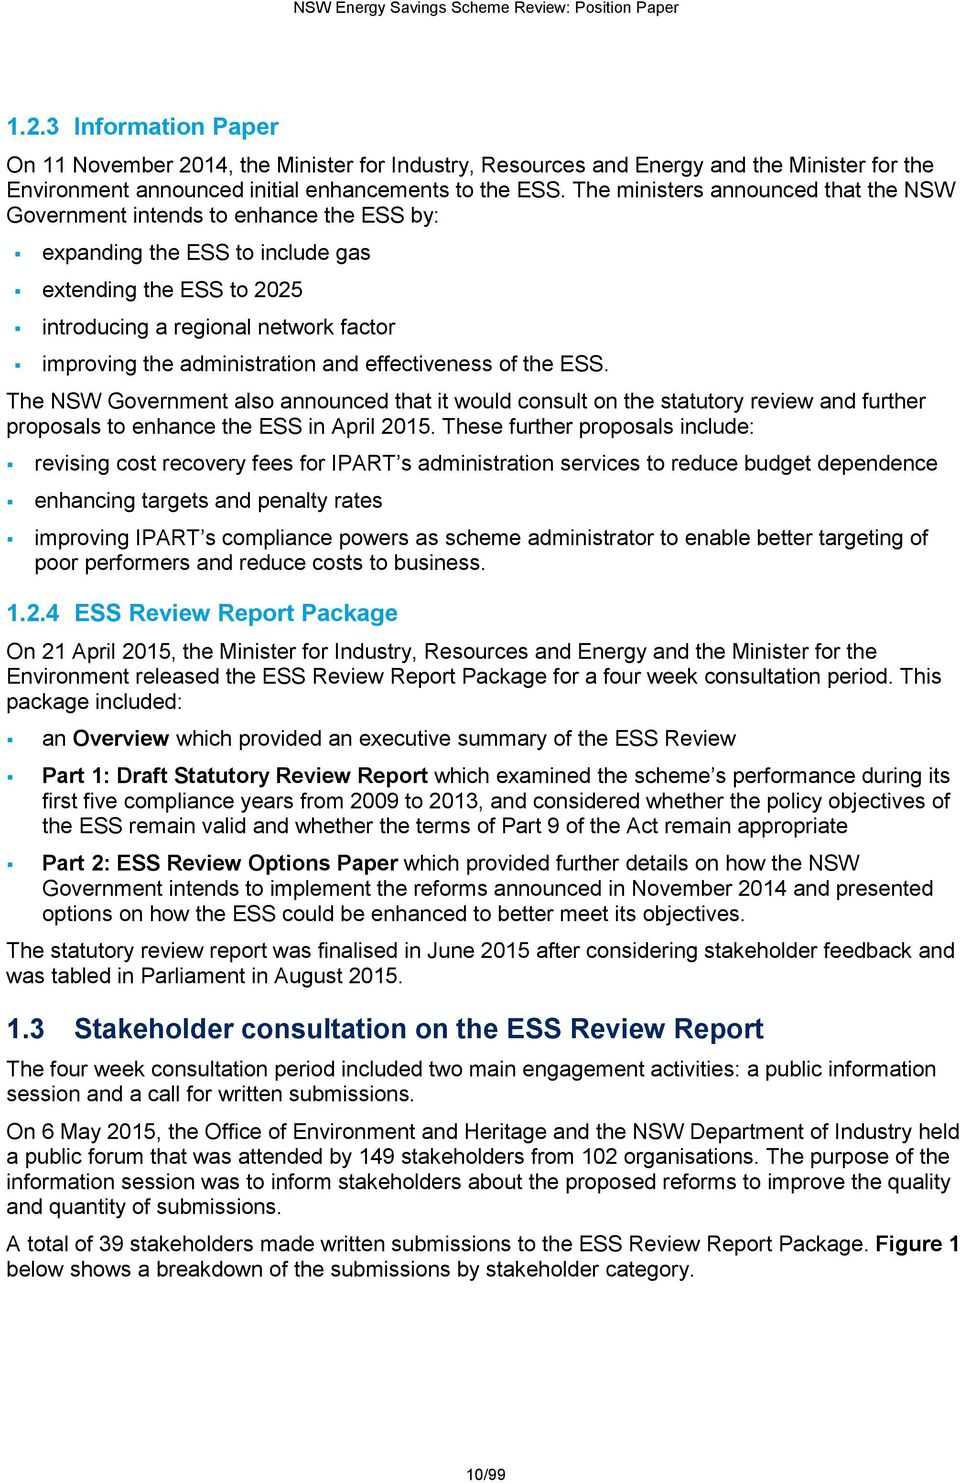 administration and effectiveness of the ESS. The NSW Government also announced that it would consult on the statutory review and further proposals to enhance the ESS in April 2015.